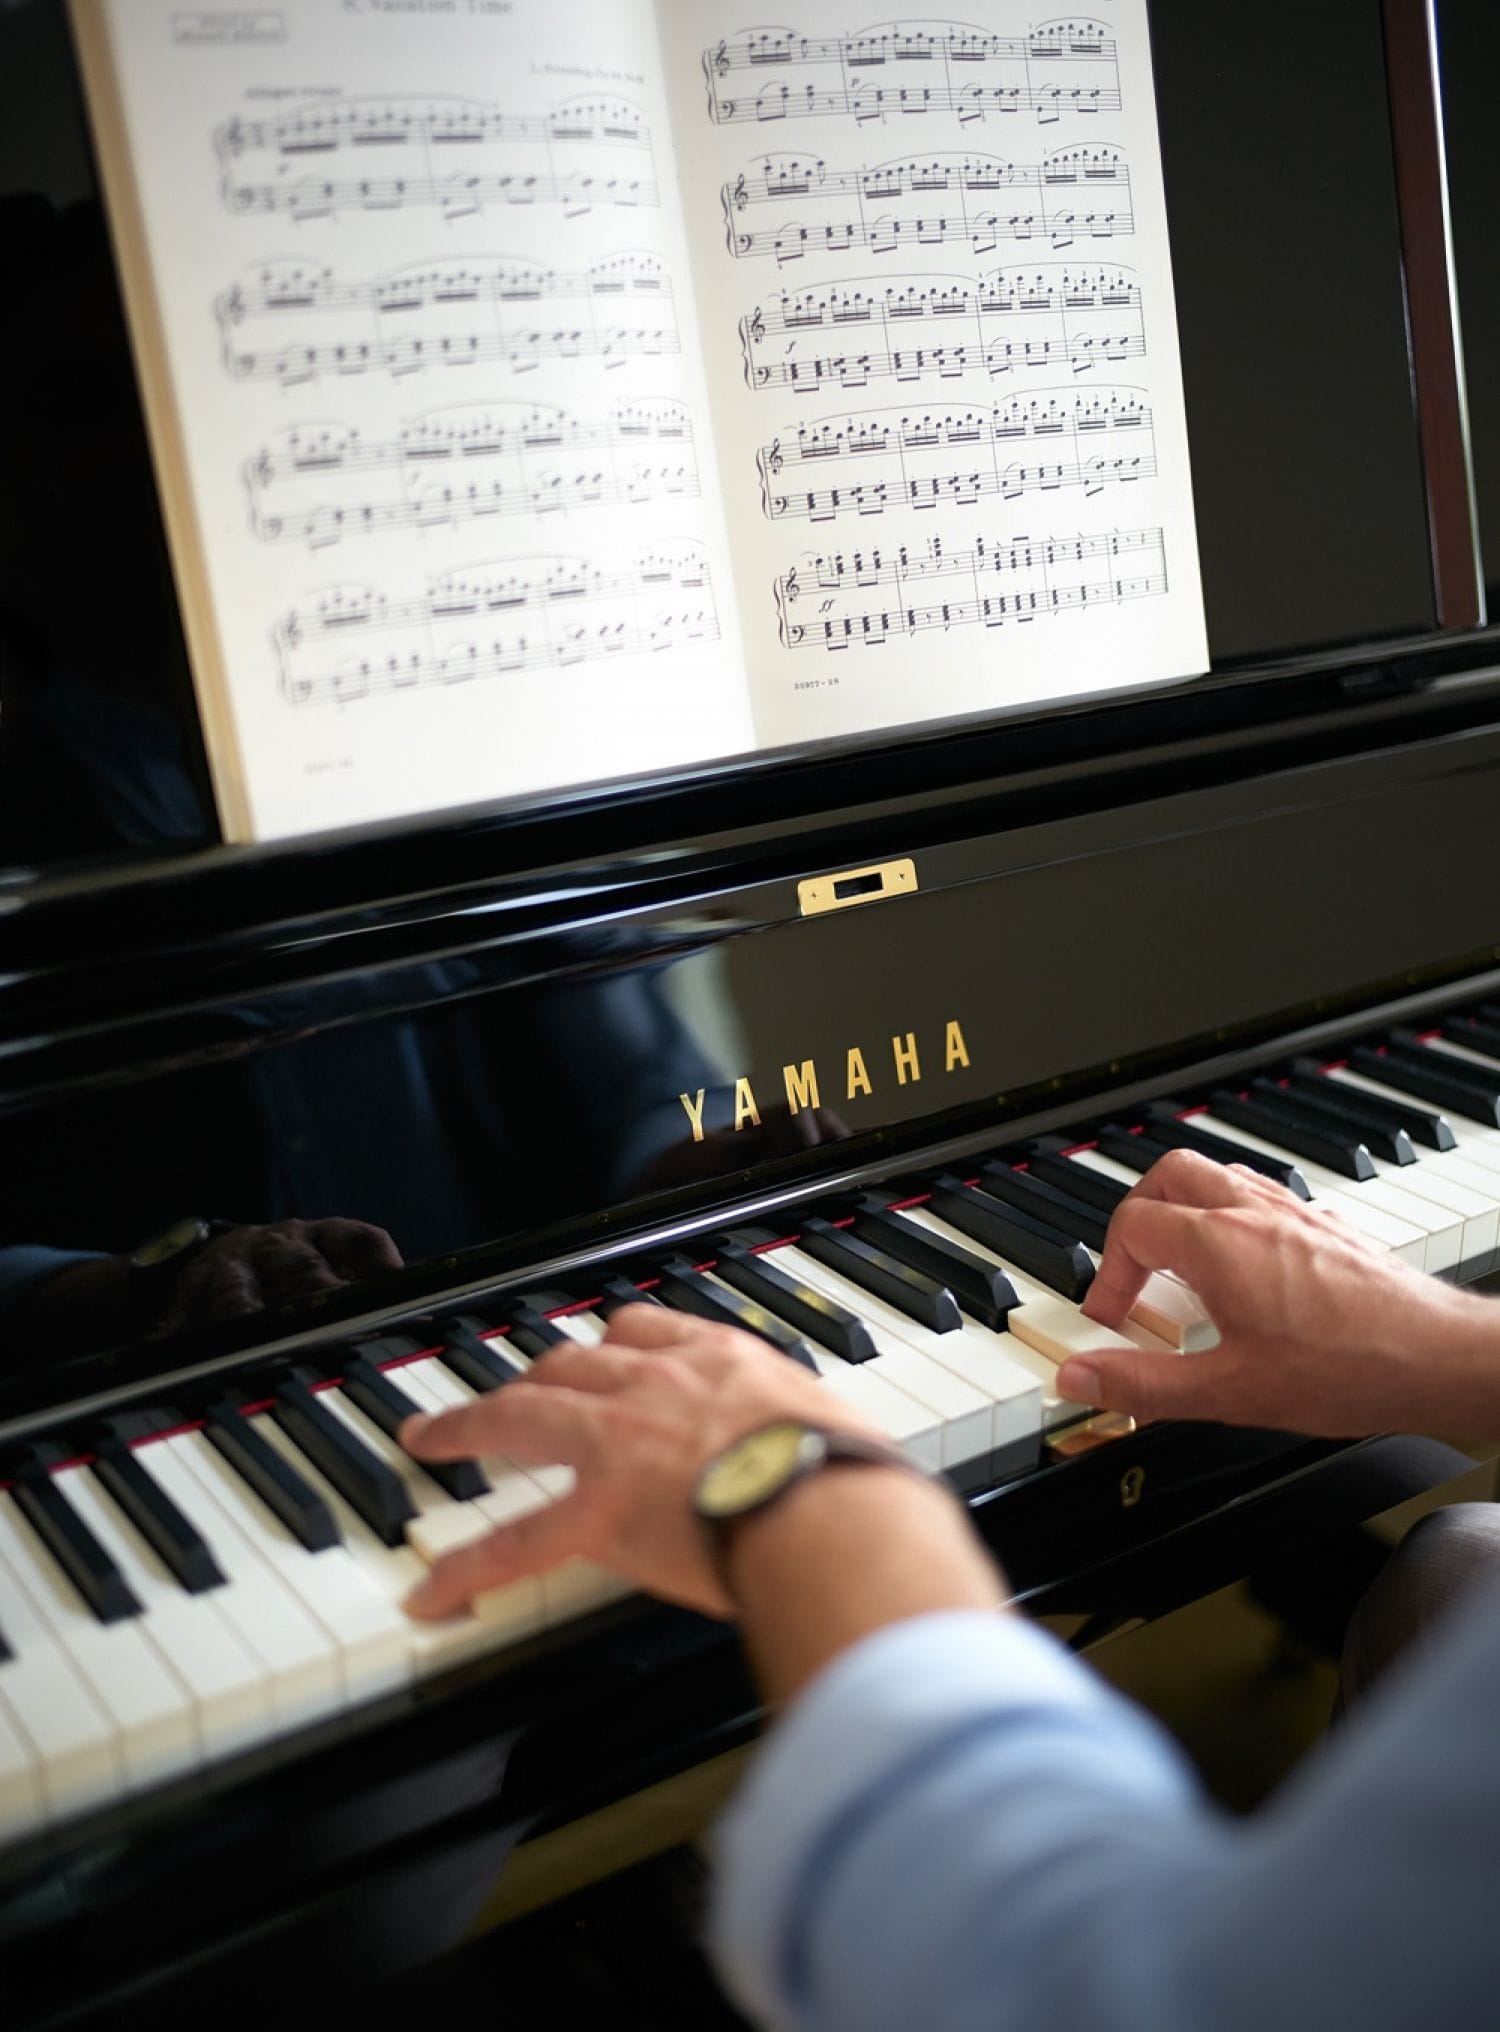 Closeup of man's hands as he plays a Yamaha piano from sheet music.